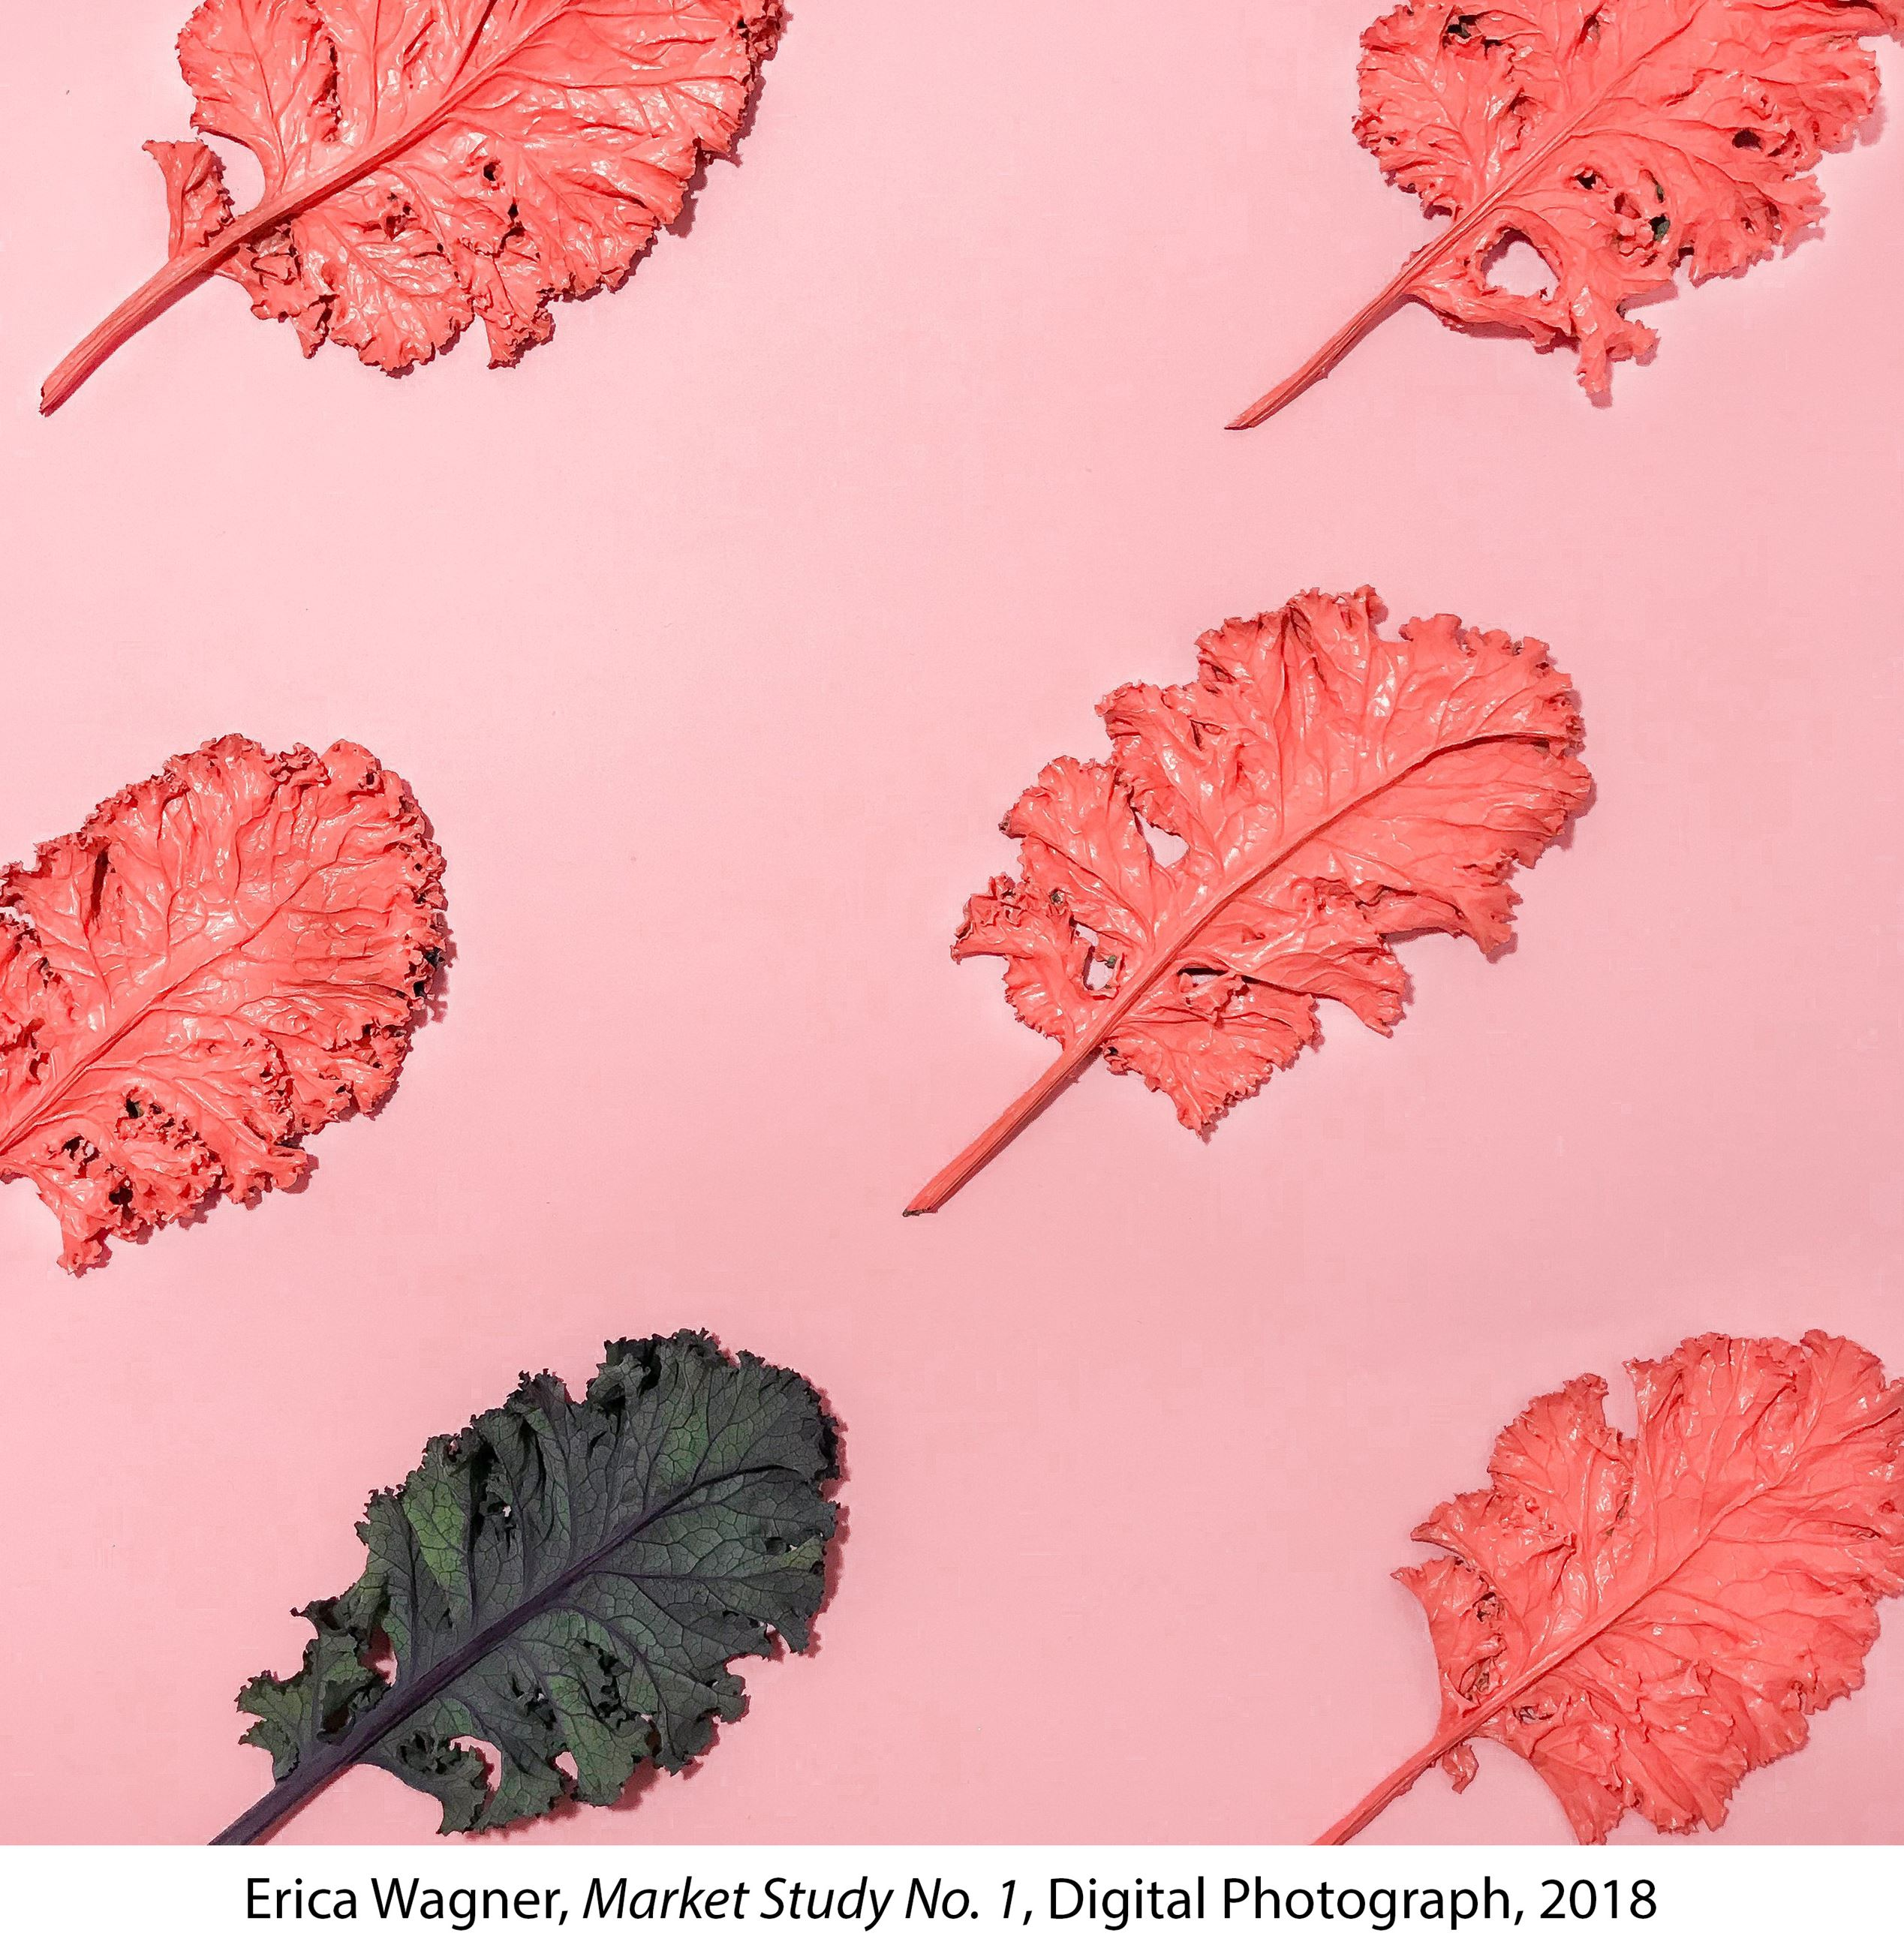 Kale leaves dipped in red paint